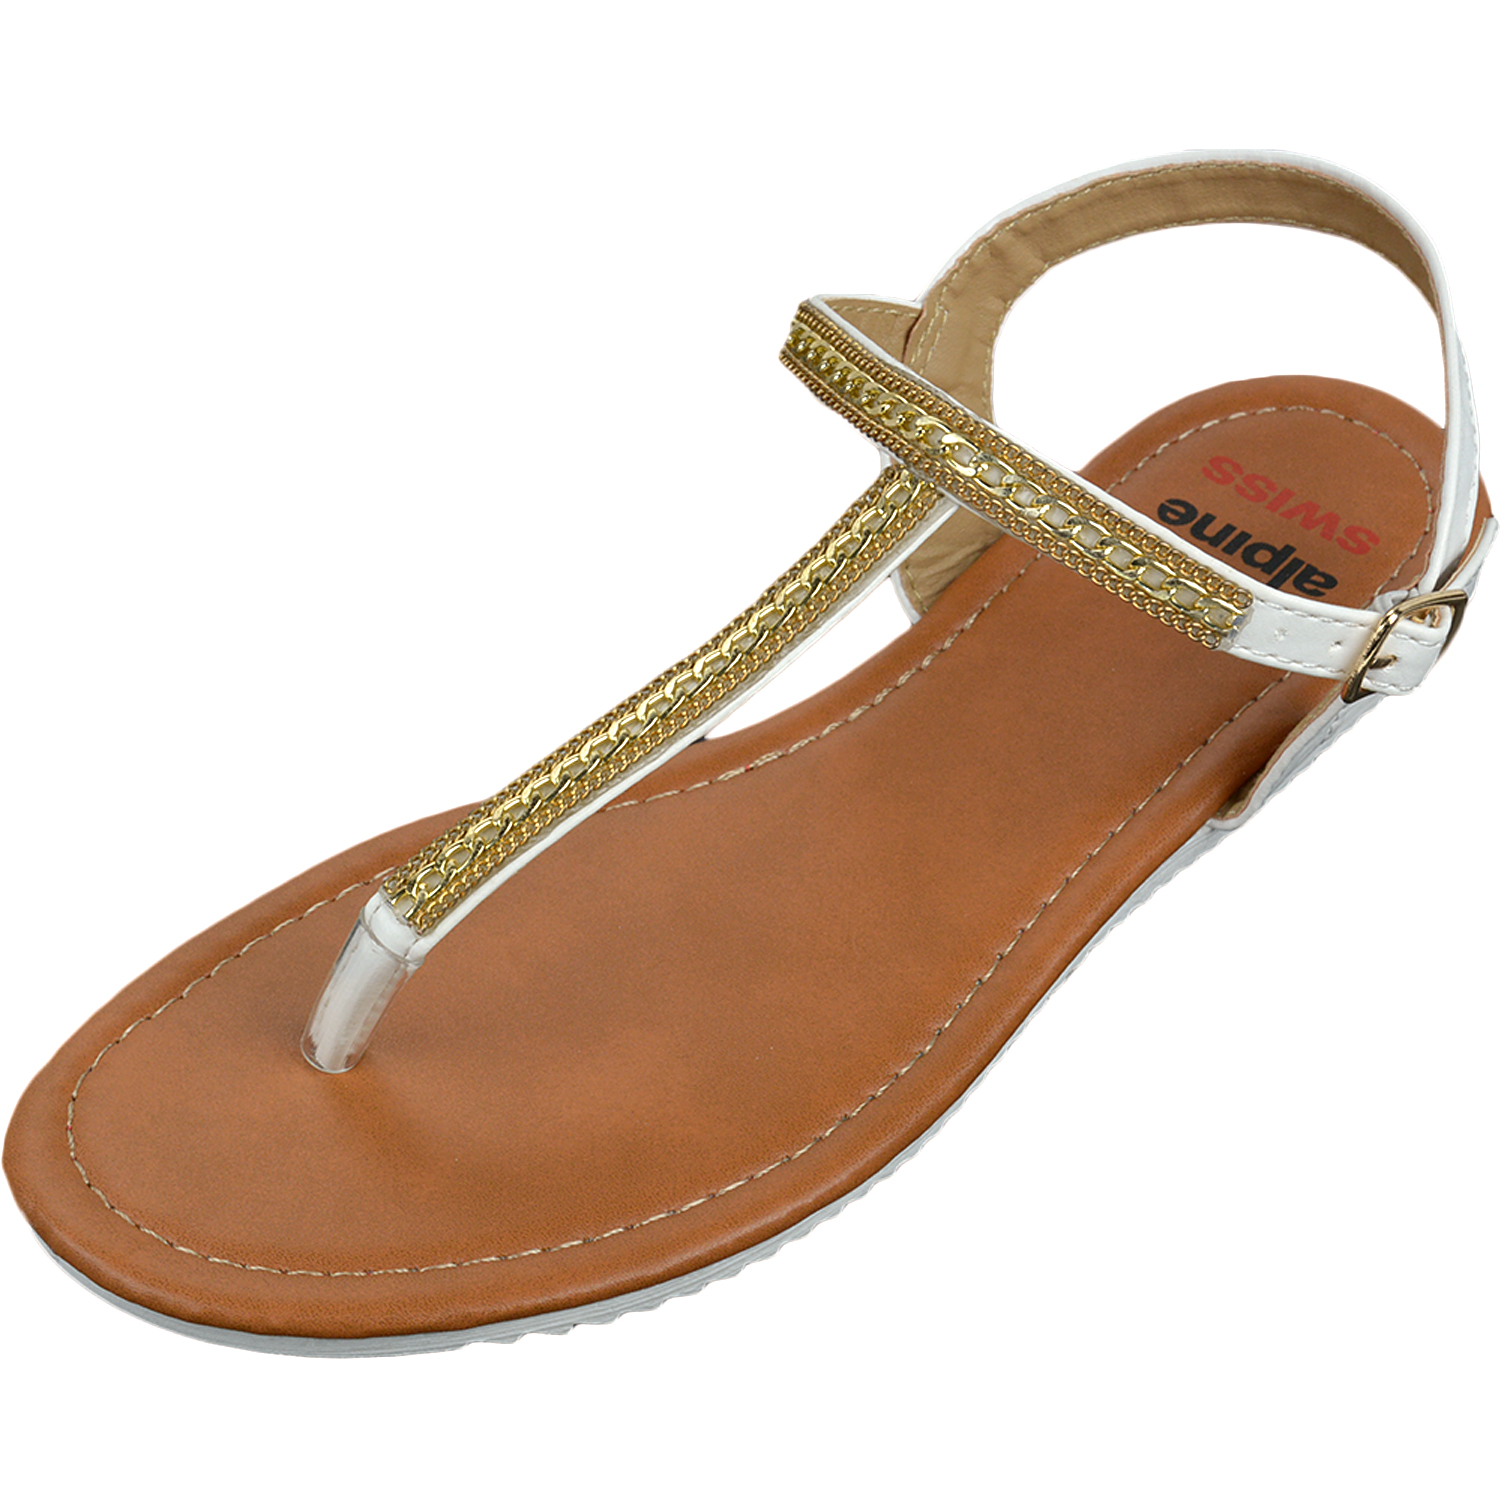 Alpine Swiss Womens Dressy Sandals Slingback Thongs Gold T ...